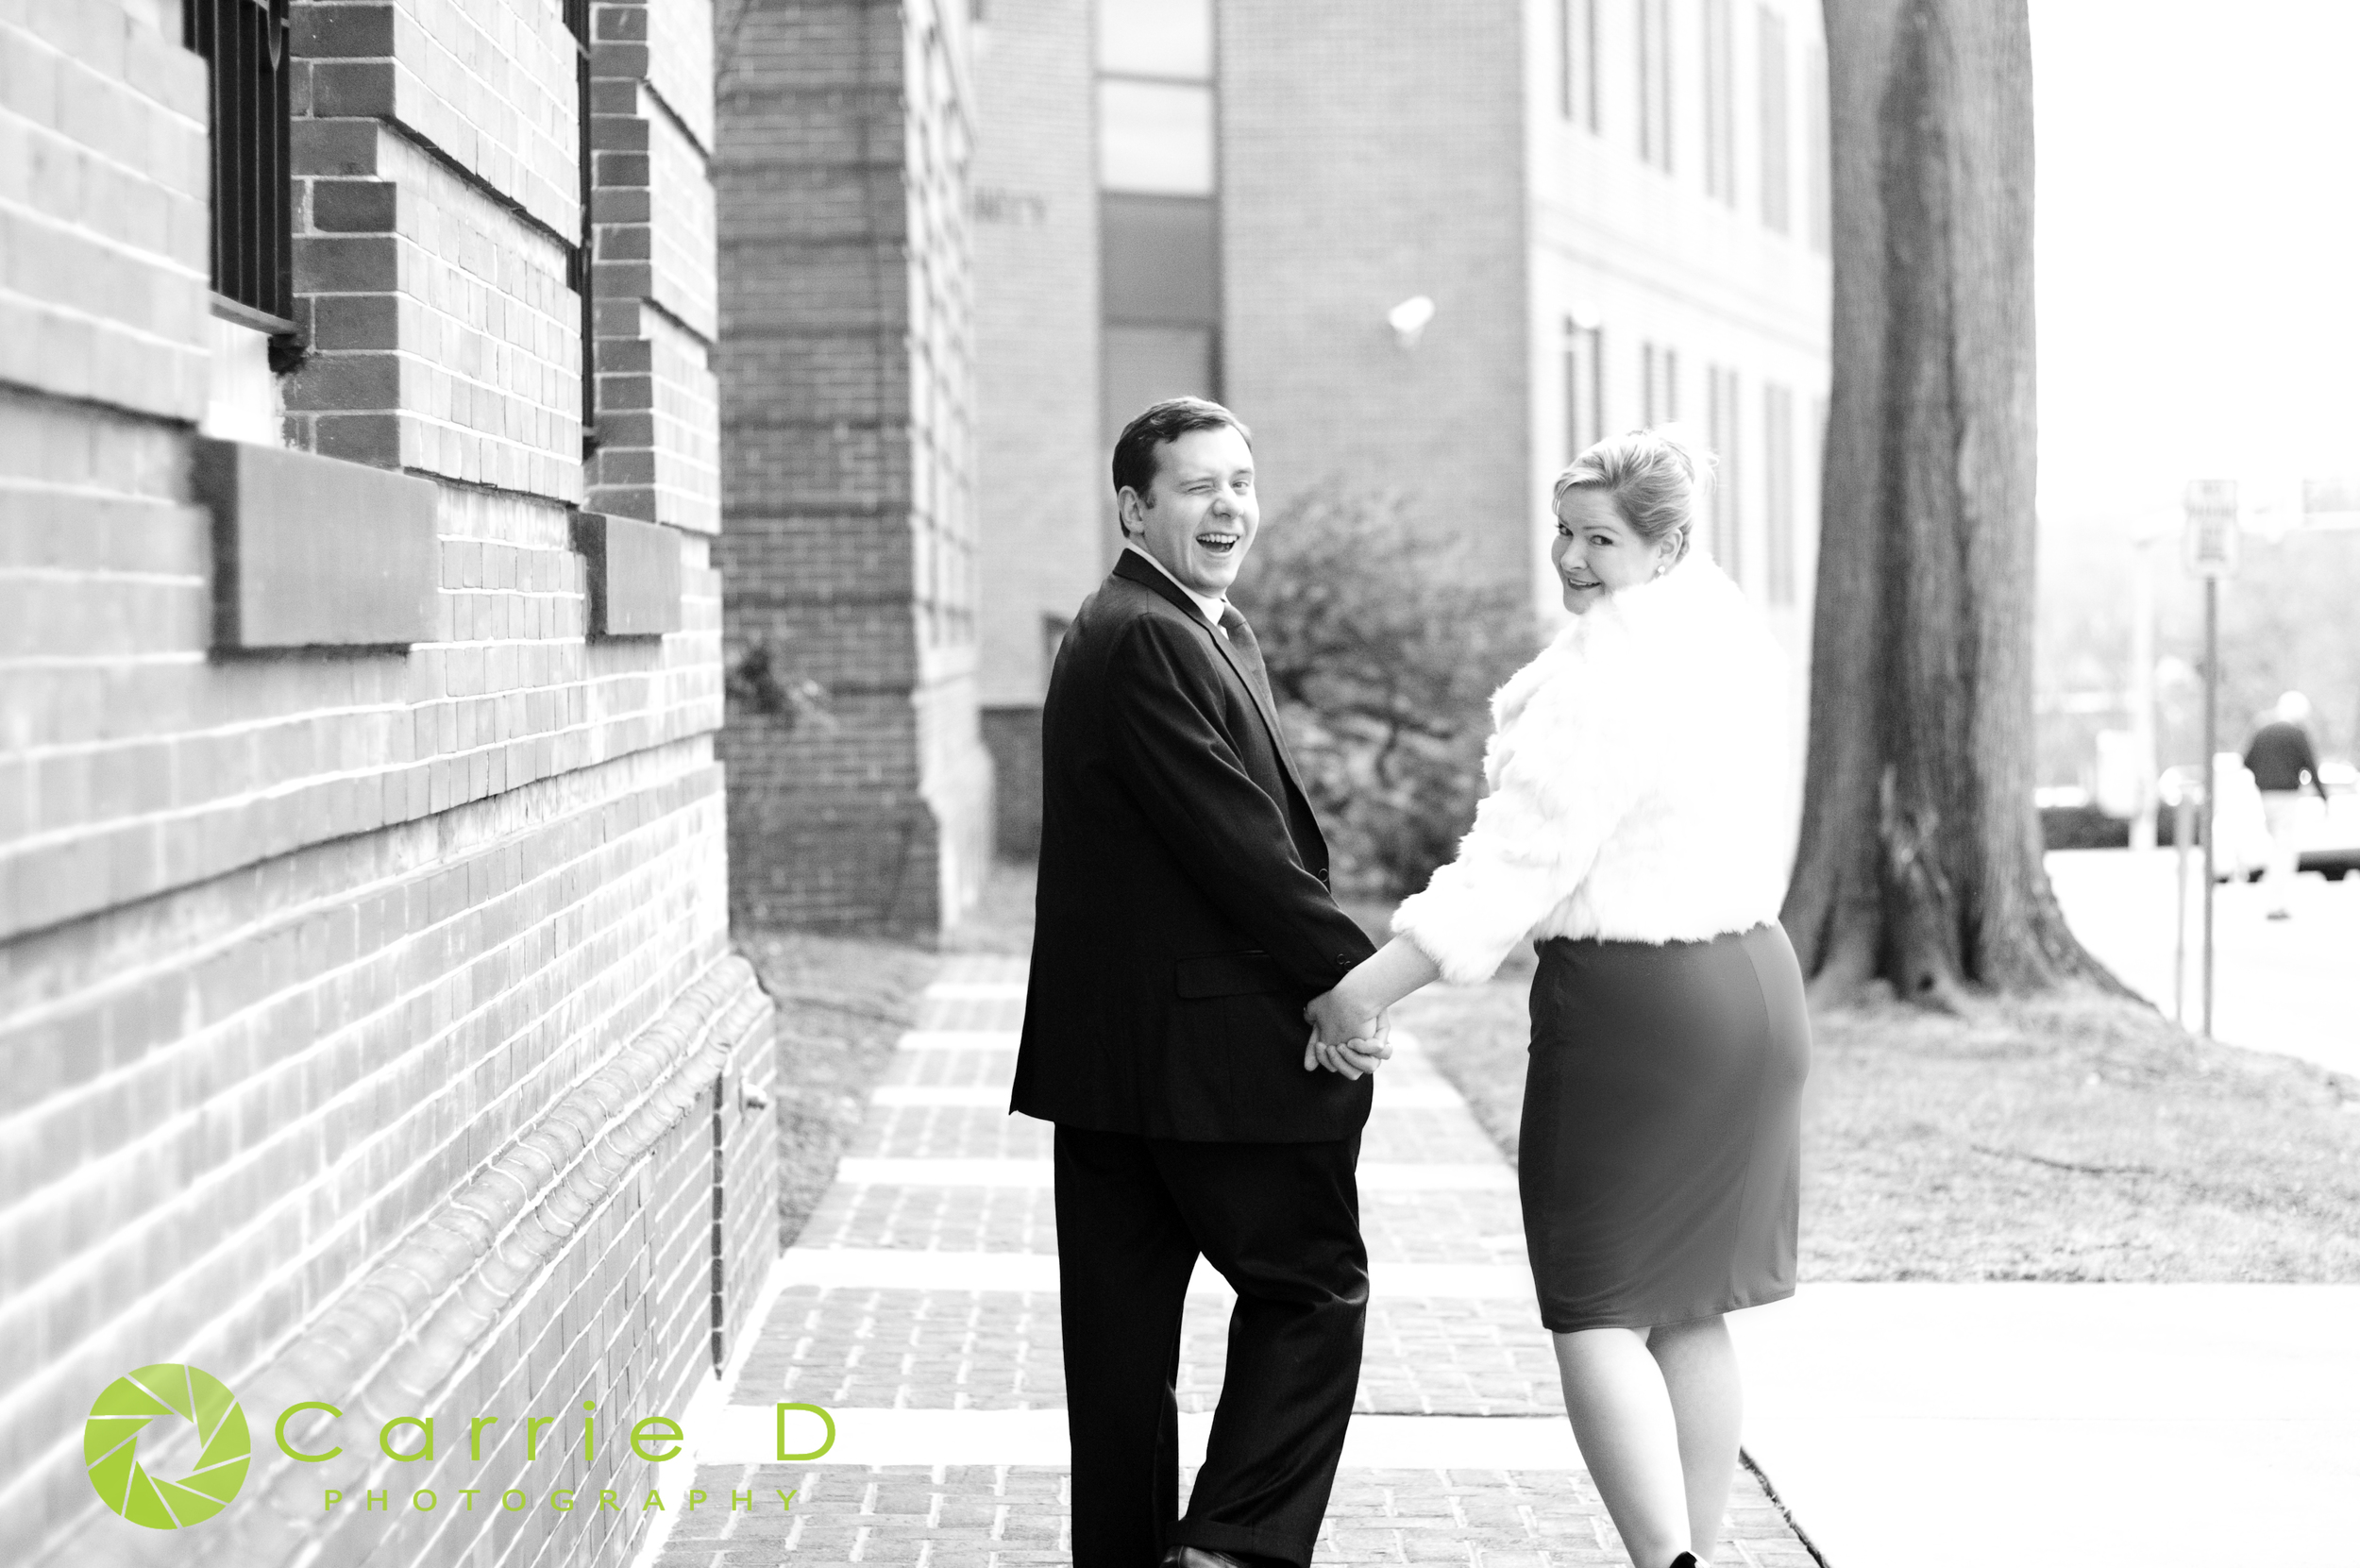 Bel Air Maryland Wedding Photographer - Maryland Wedding Photographer - Maryland Wedding Photography